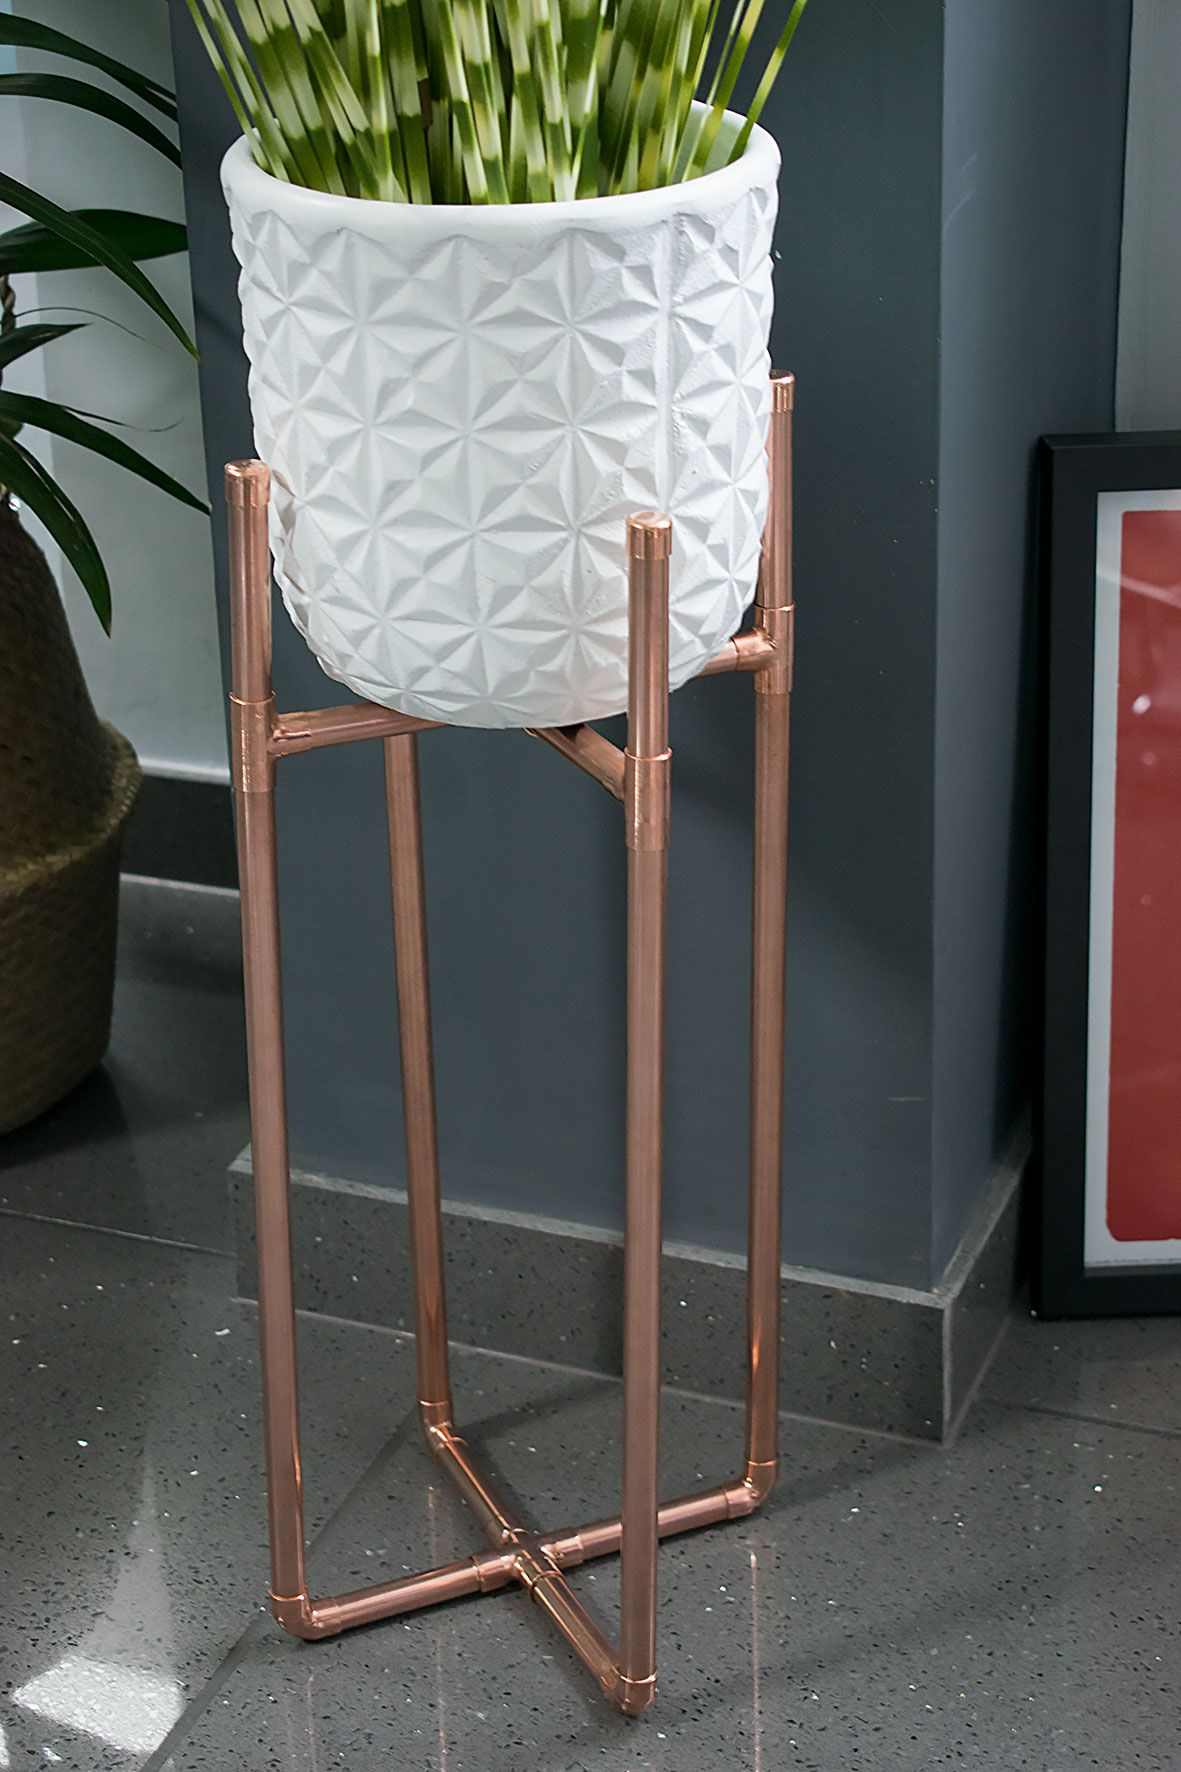 How To Make A Diy Copper Plant Stand Diy Plant Stand White Plants Metal Plant Stand